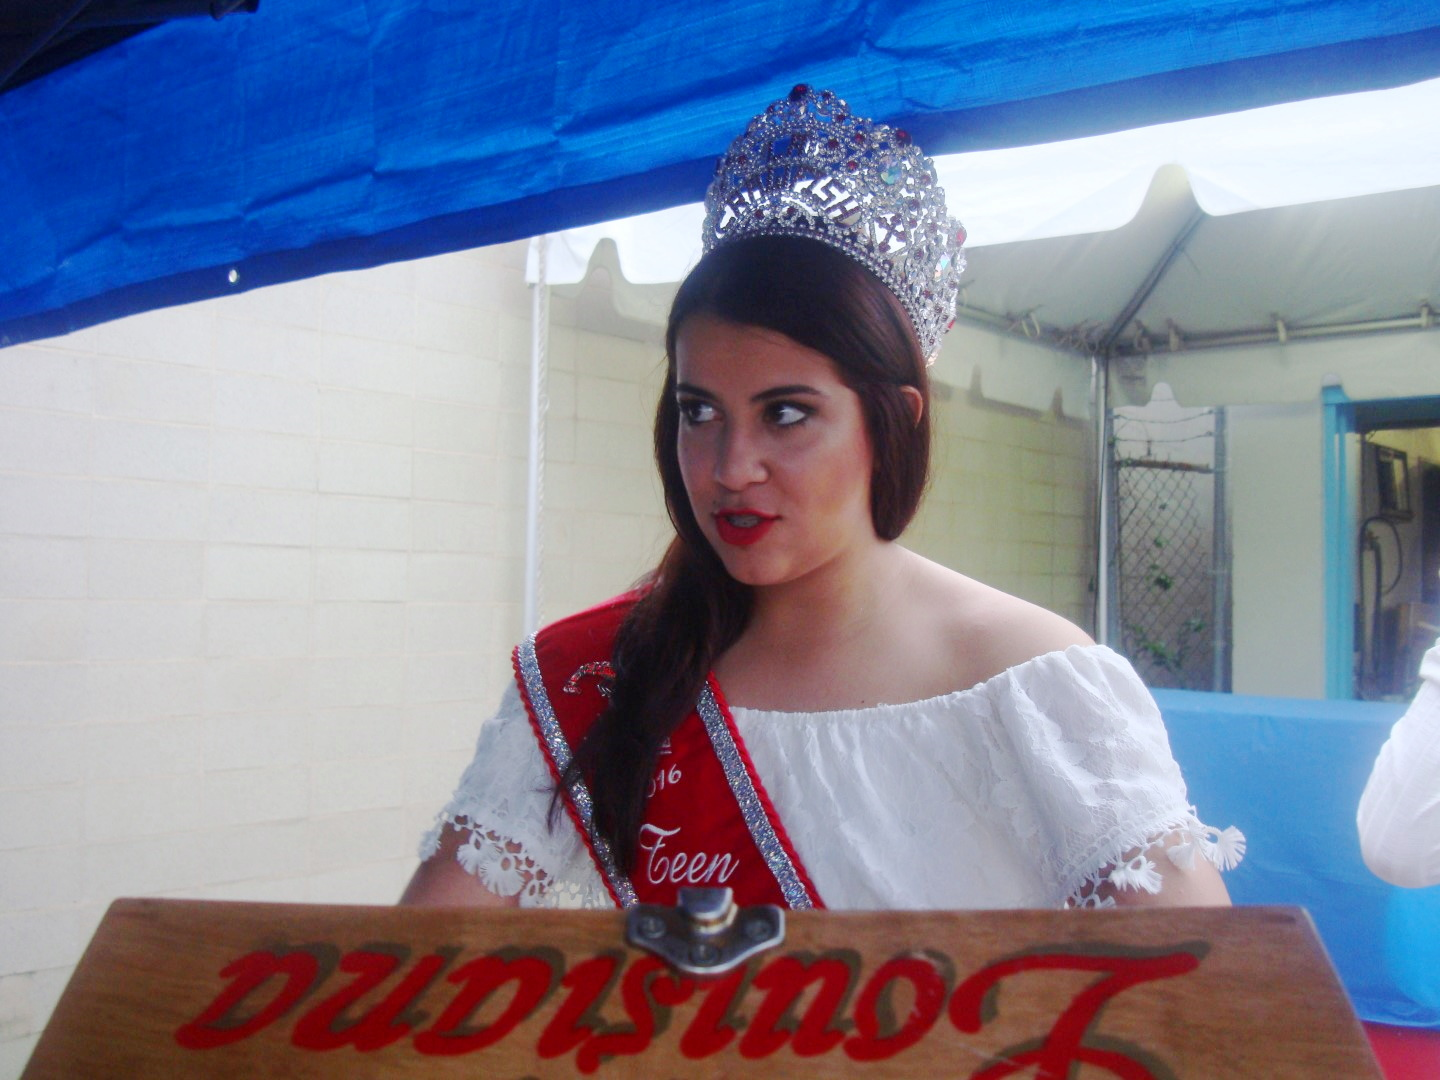 Sarah Melerine Is The 2016 Teen Queen Of Louisiana Crawfish  Festival